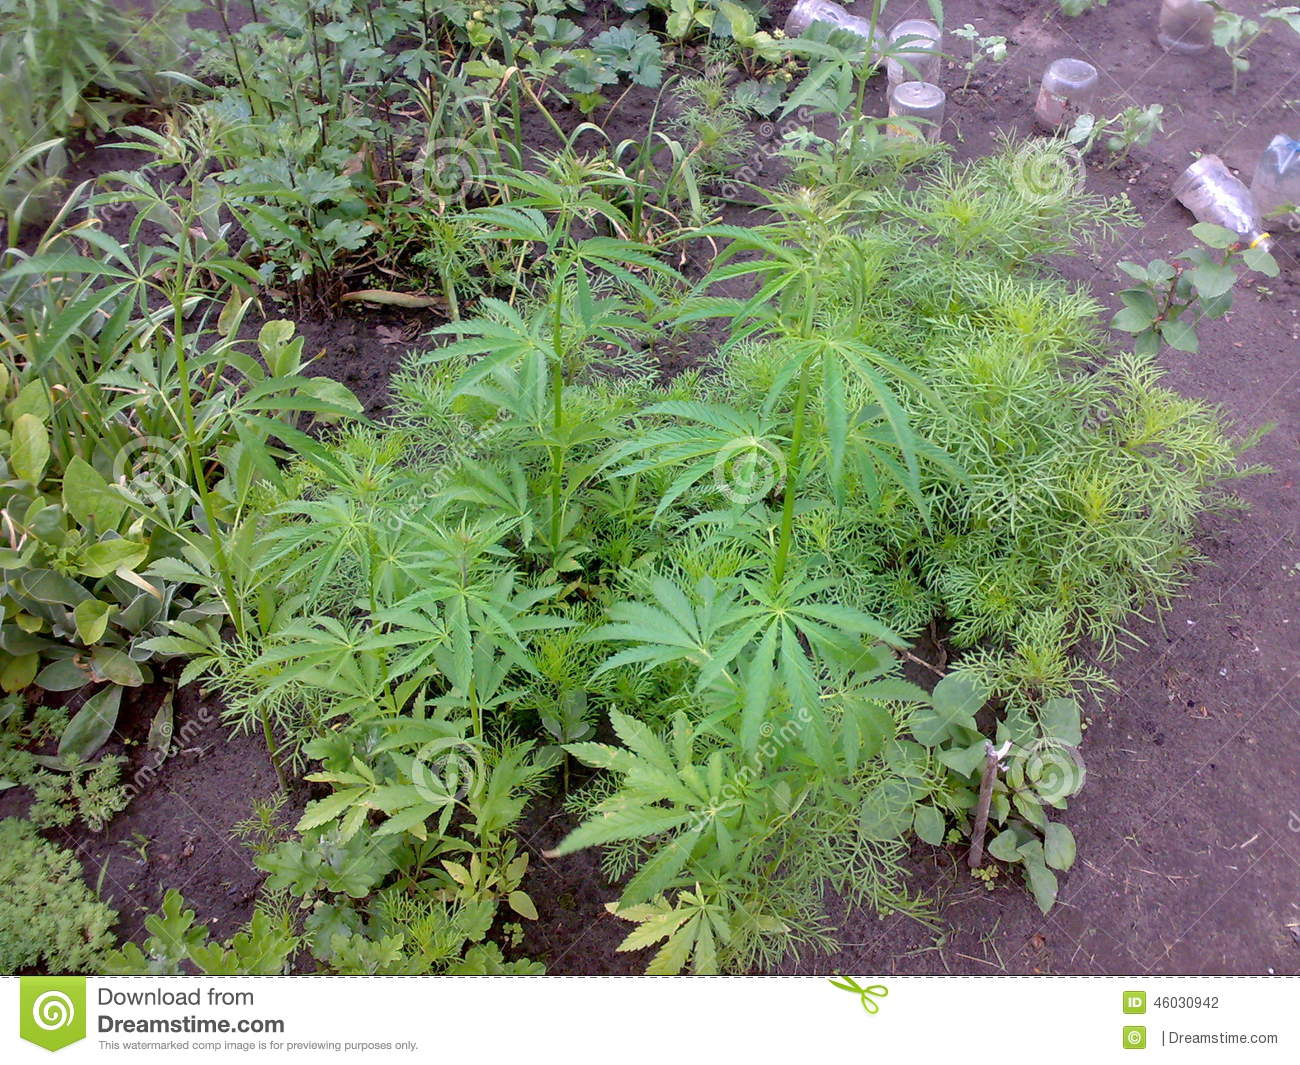 Growing Weed In Your Backyard : The photo shows wild marijuana growing in the backyard Wild grass in